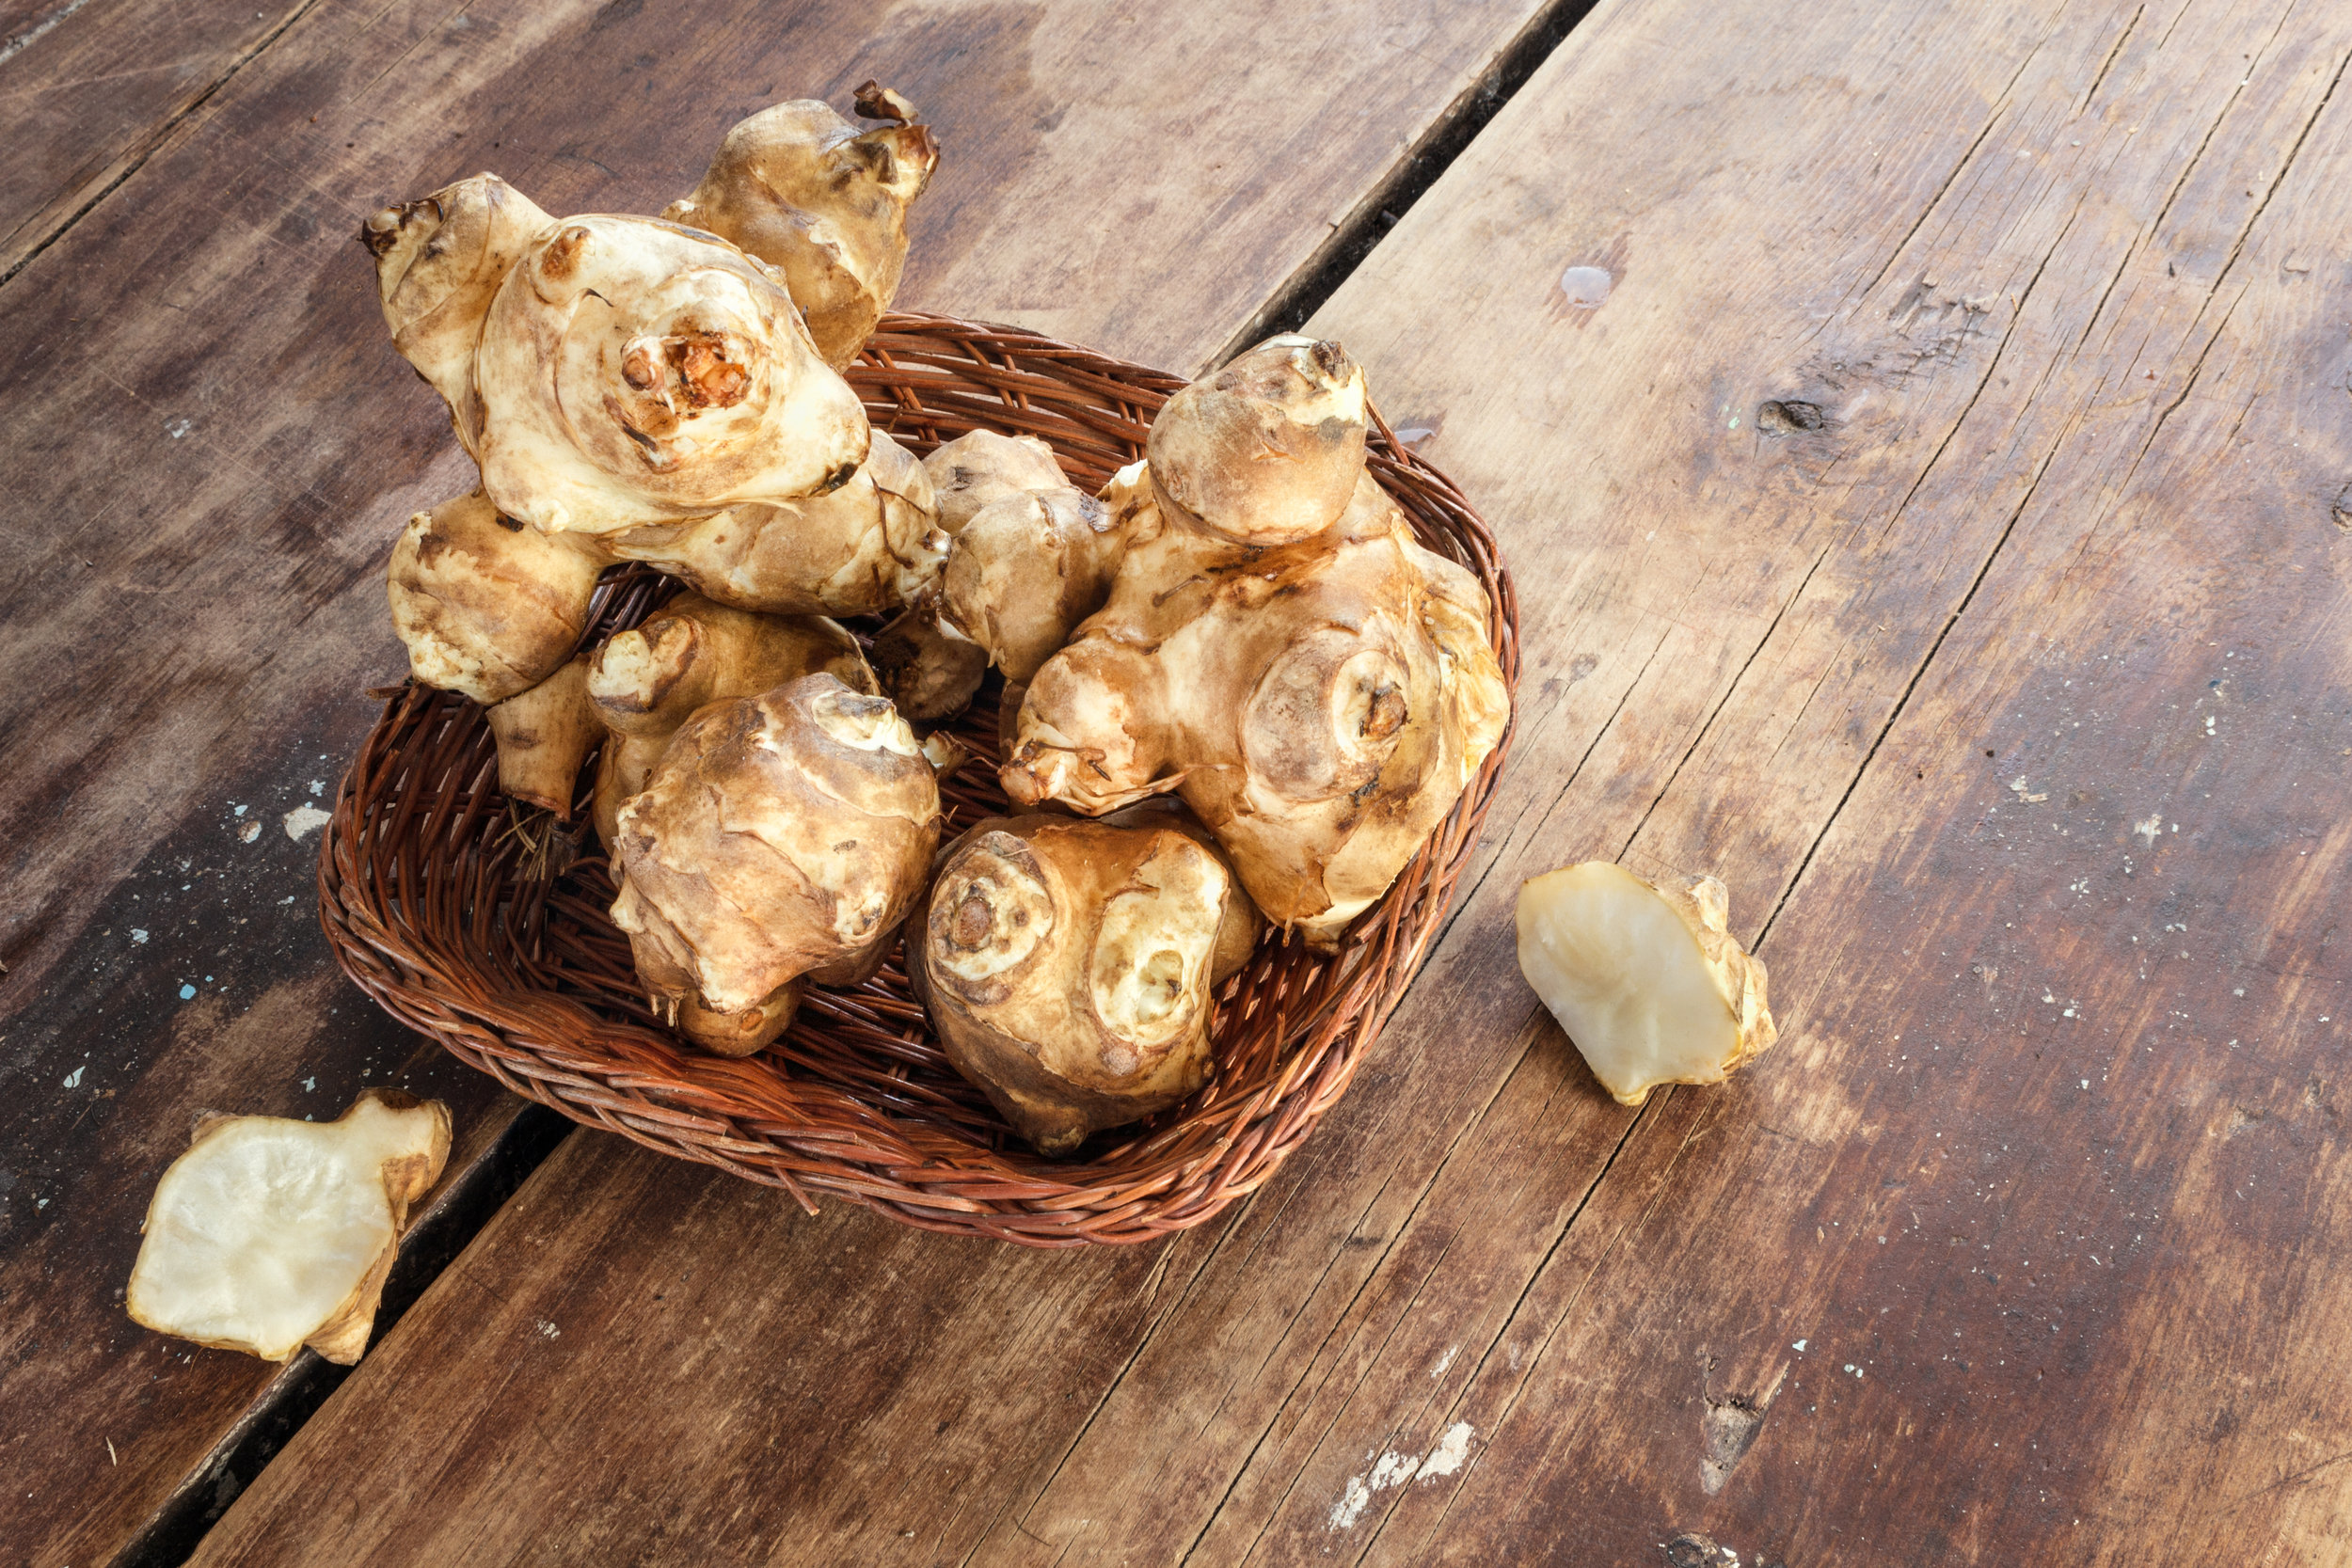 local Jerusalem artichokes